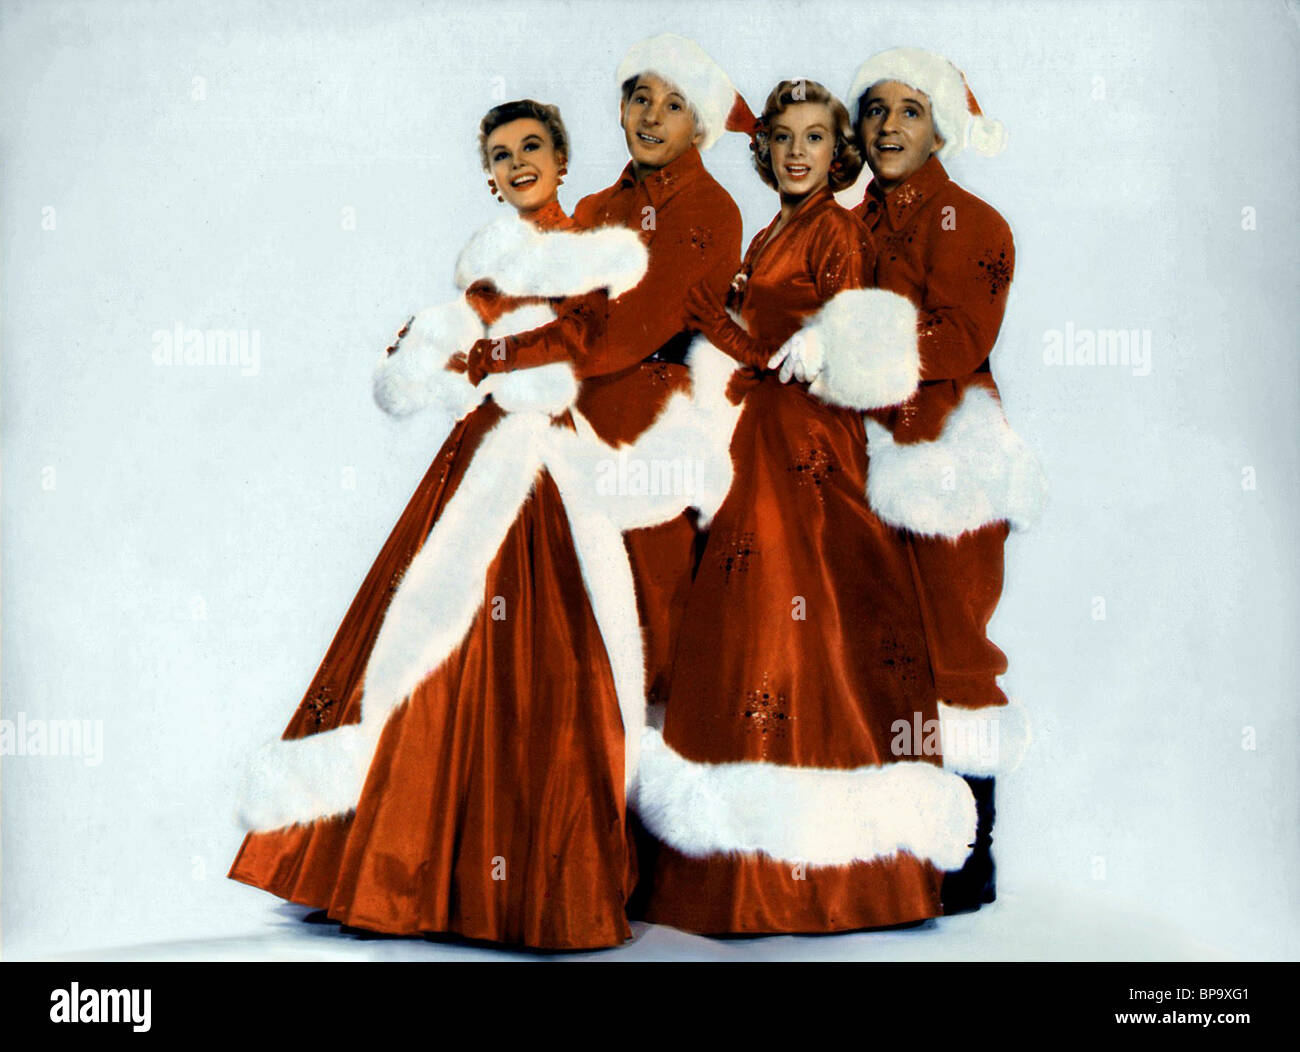 vera ellen danny kaye rosemary clooney bing crosby white christmas 1954 stock - Bing Crosby Christmas